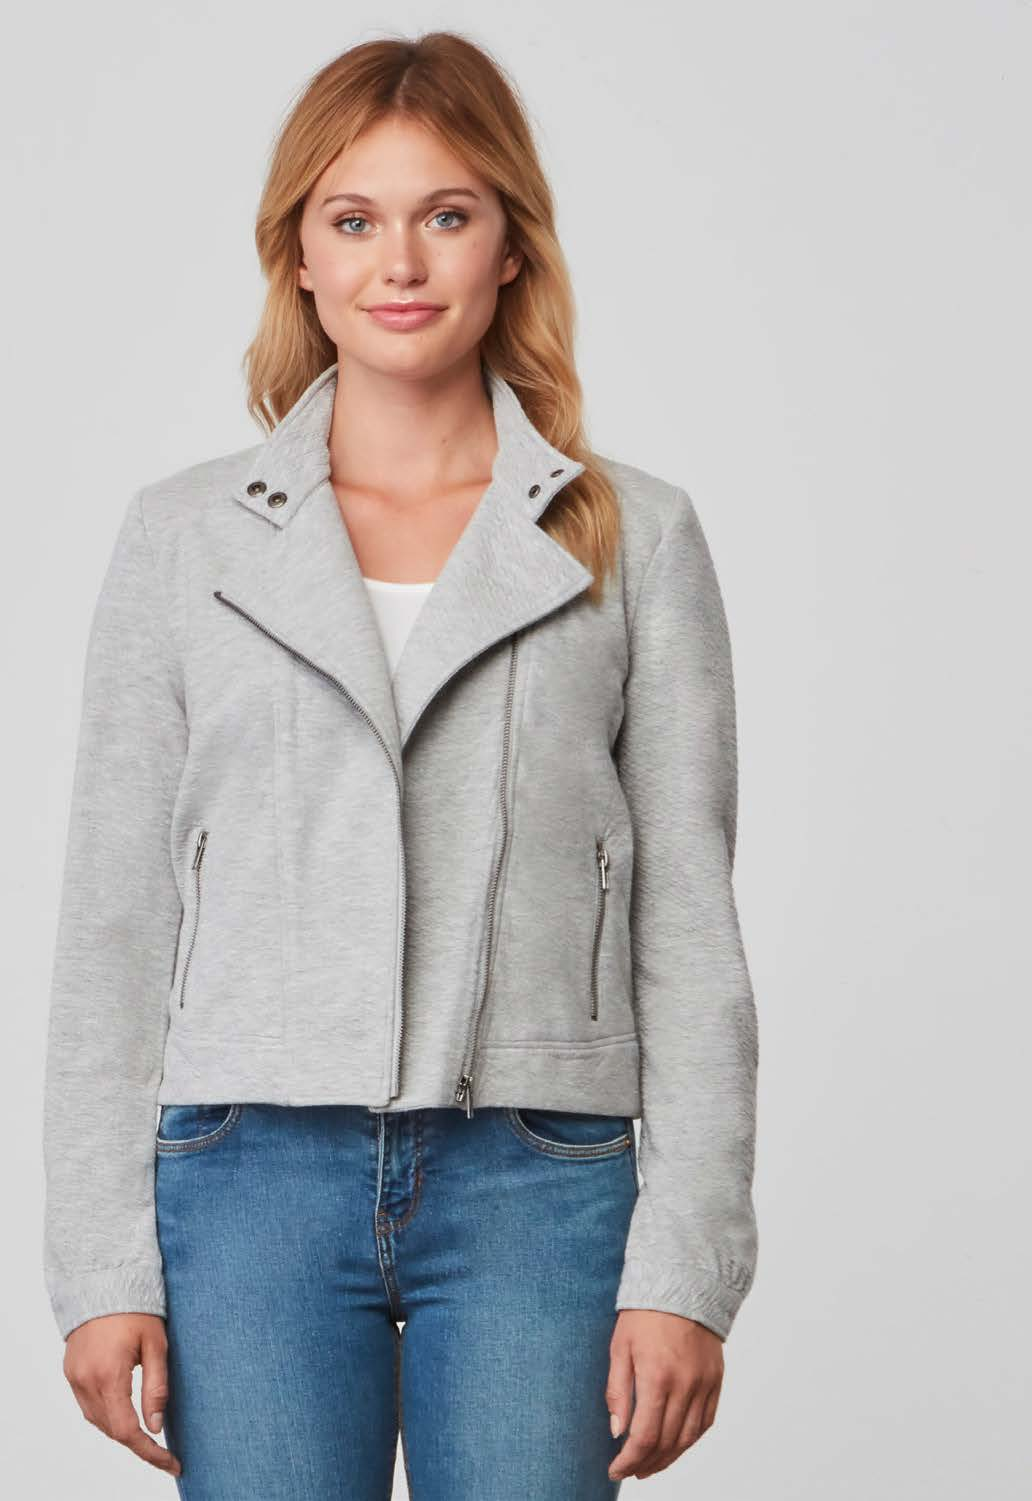 Galice Light Heather Grey Moto Jacket